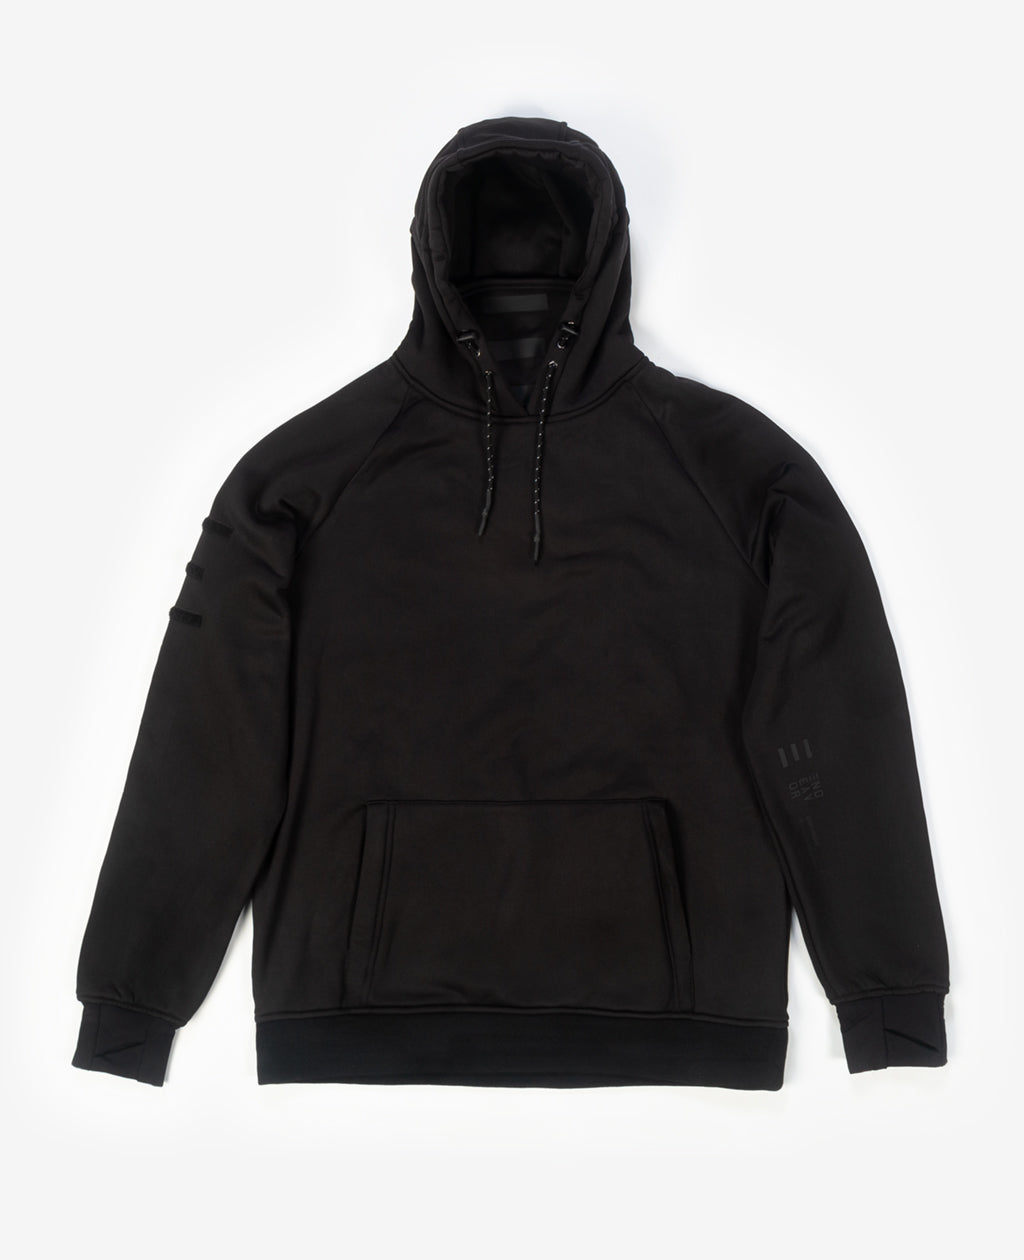 Endeavor Ops Riding Hoody